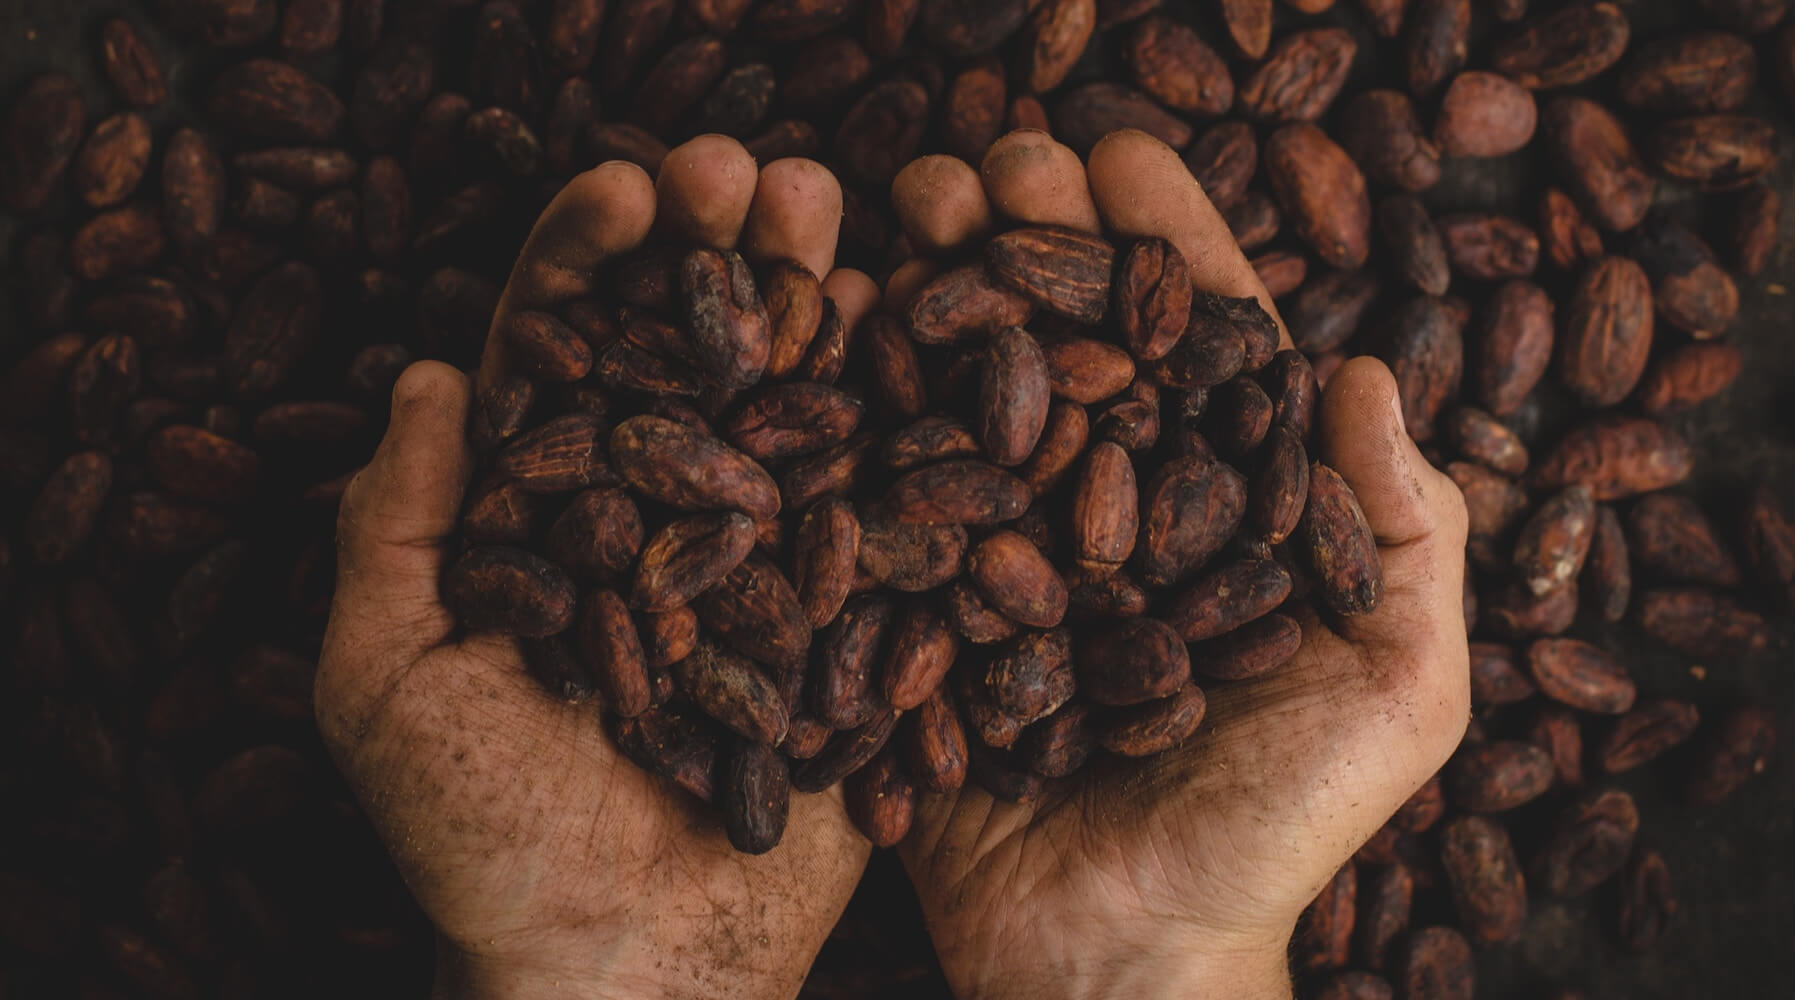 Removing Child Labor, Deforestation, and Poverty from the Cost of Chocolate